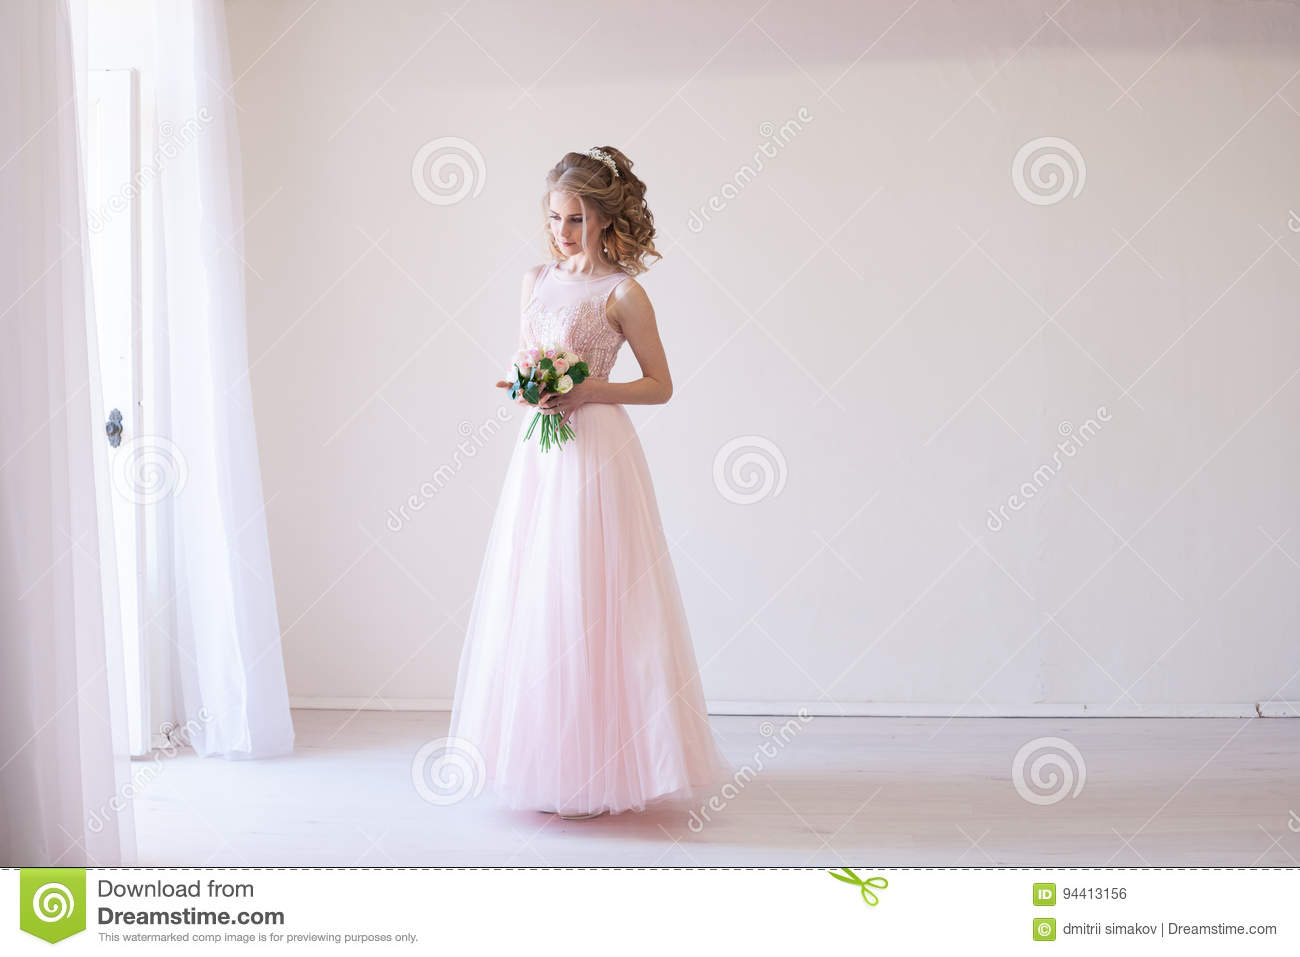 Tender bride in a white room before the wedding